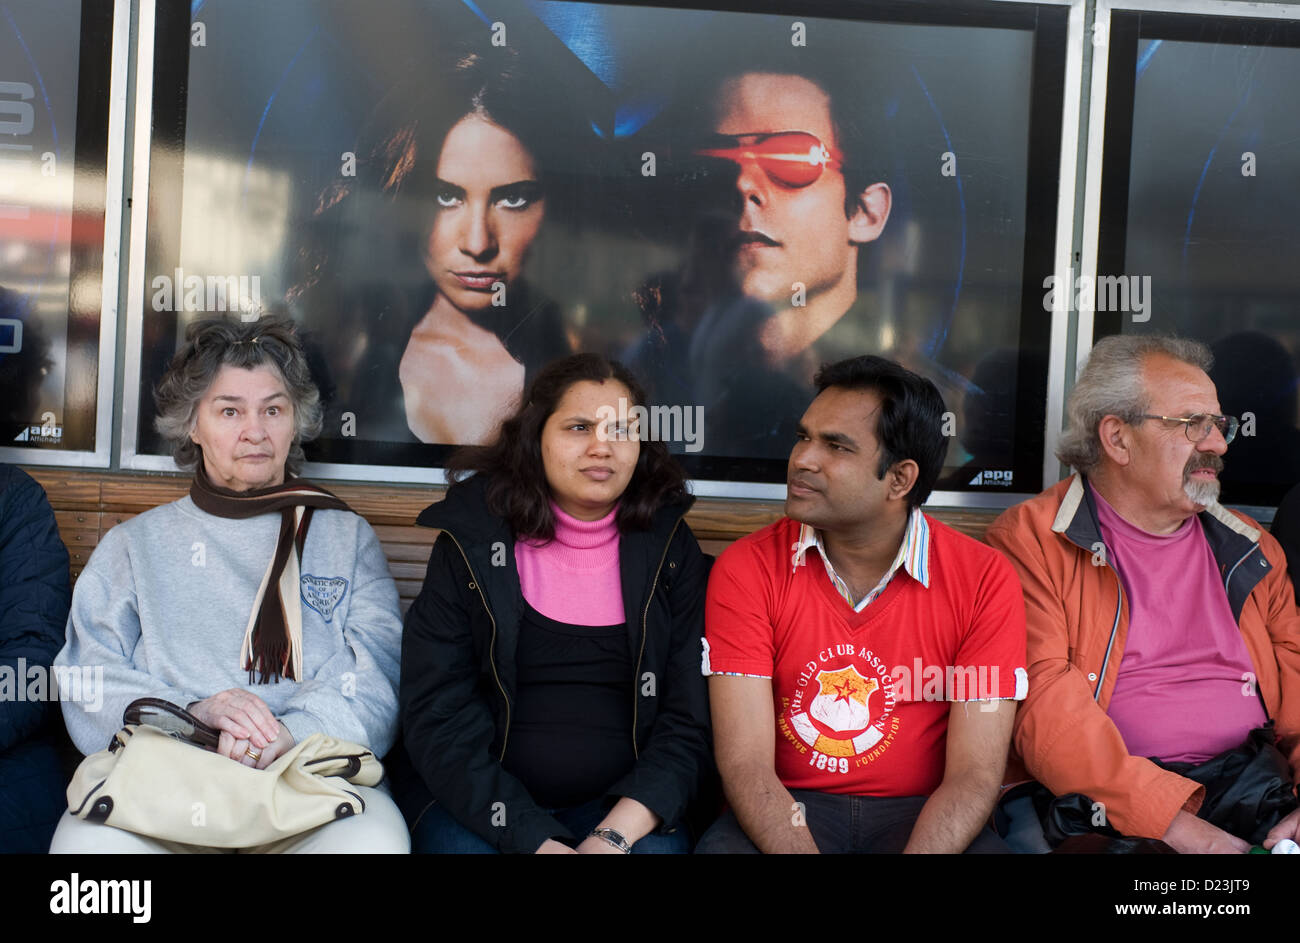 Zurich, Switzerland, locals and foreigners together on a bench - Stock Image